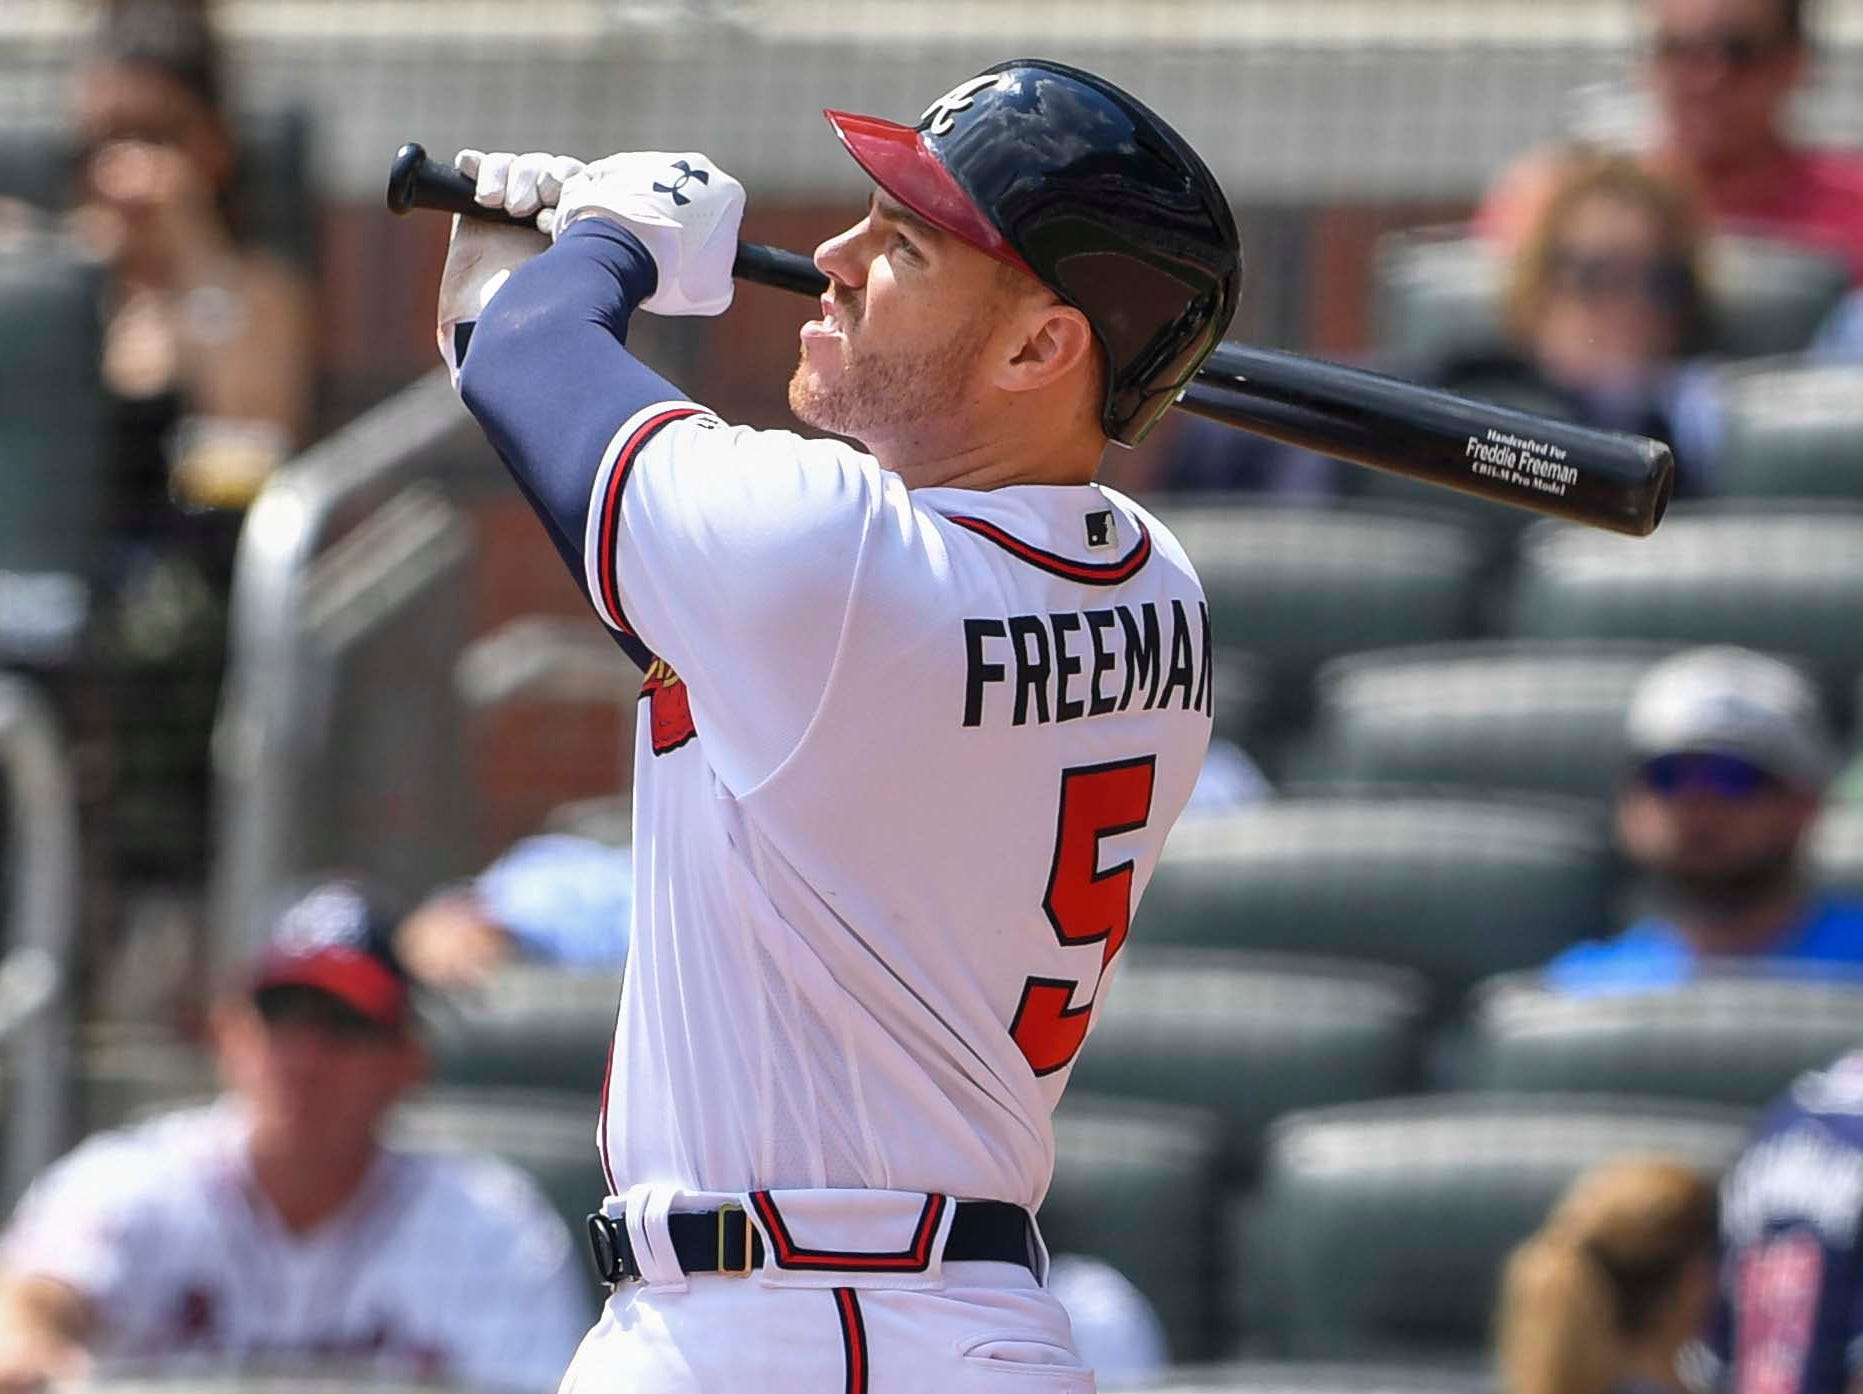 Braves first baseman Freddie Freeman hits a home run against the Diamondbacks during the eighth inning of a game at SunTrust Park.